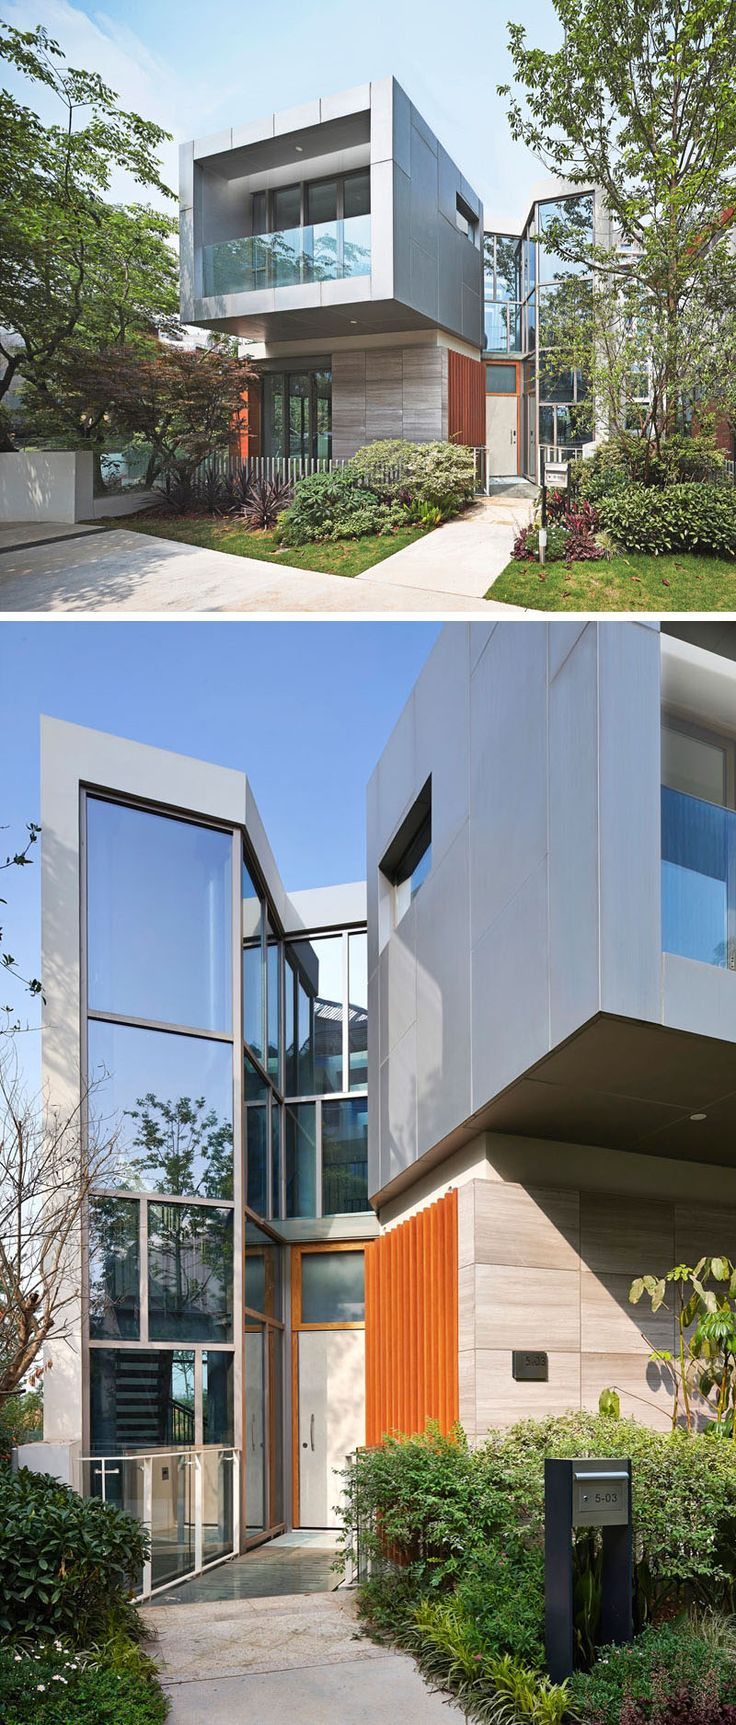 20 exterior pictures of a modern house development in china by john friedman alice kimm architects